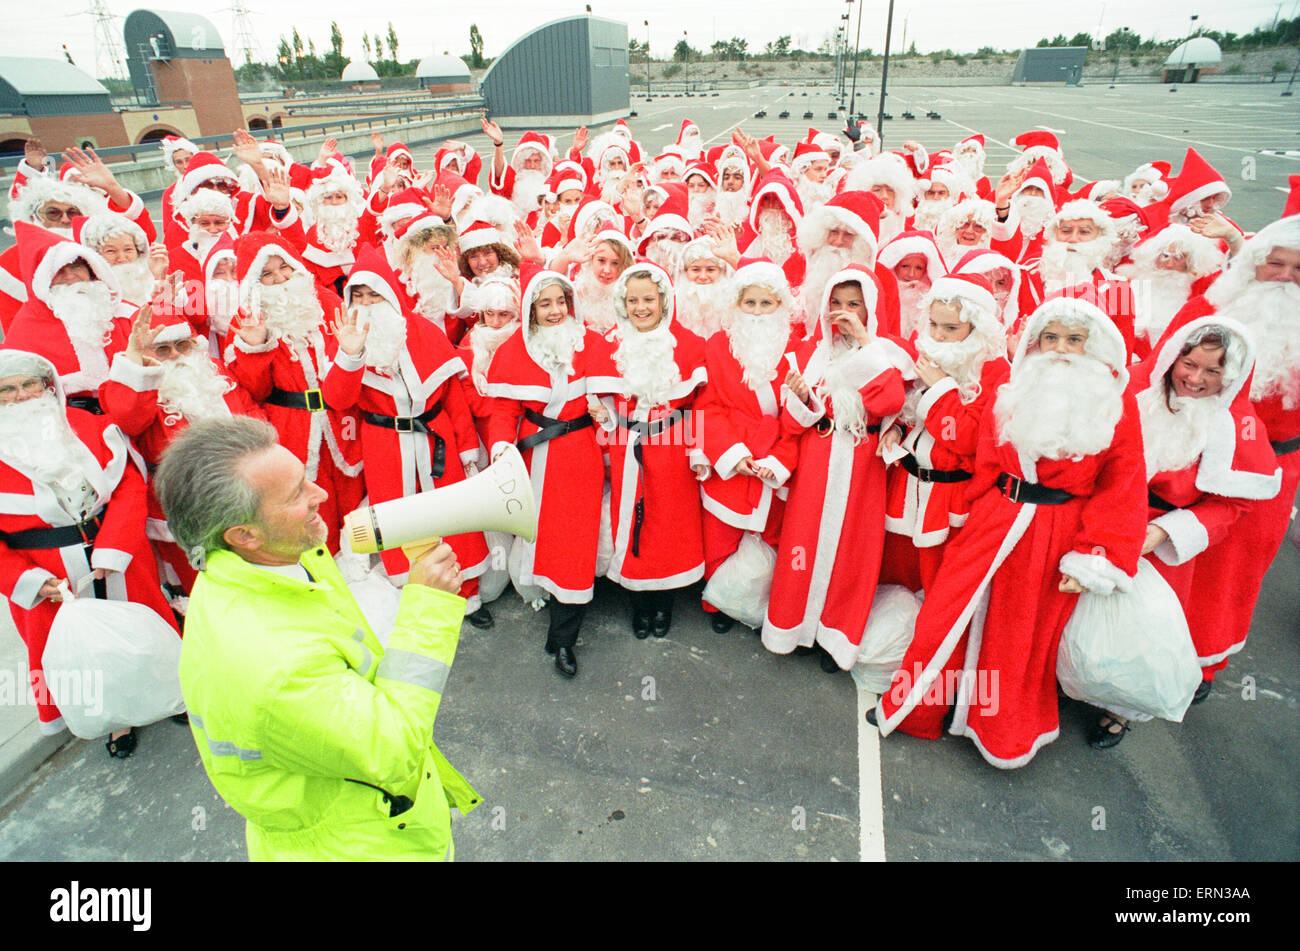 100 Father Christmas's, Photocall to open new multi storey carpark at Lakeside Shopping Centre, 14th October - Stock Image